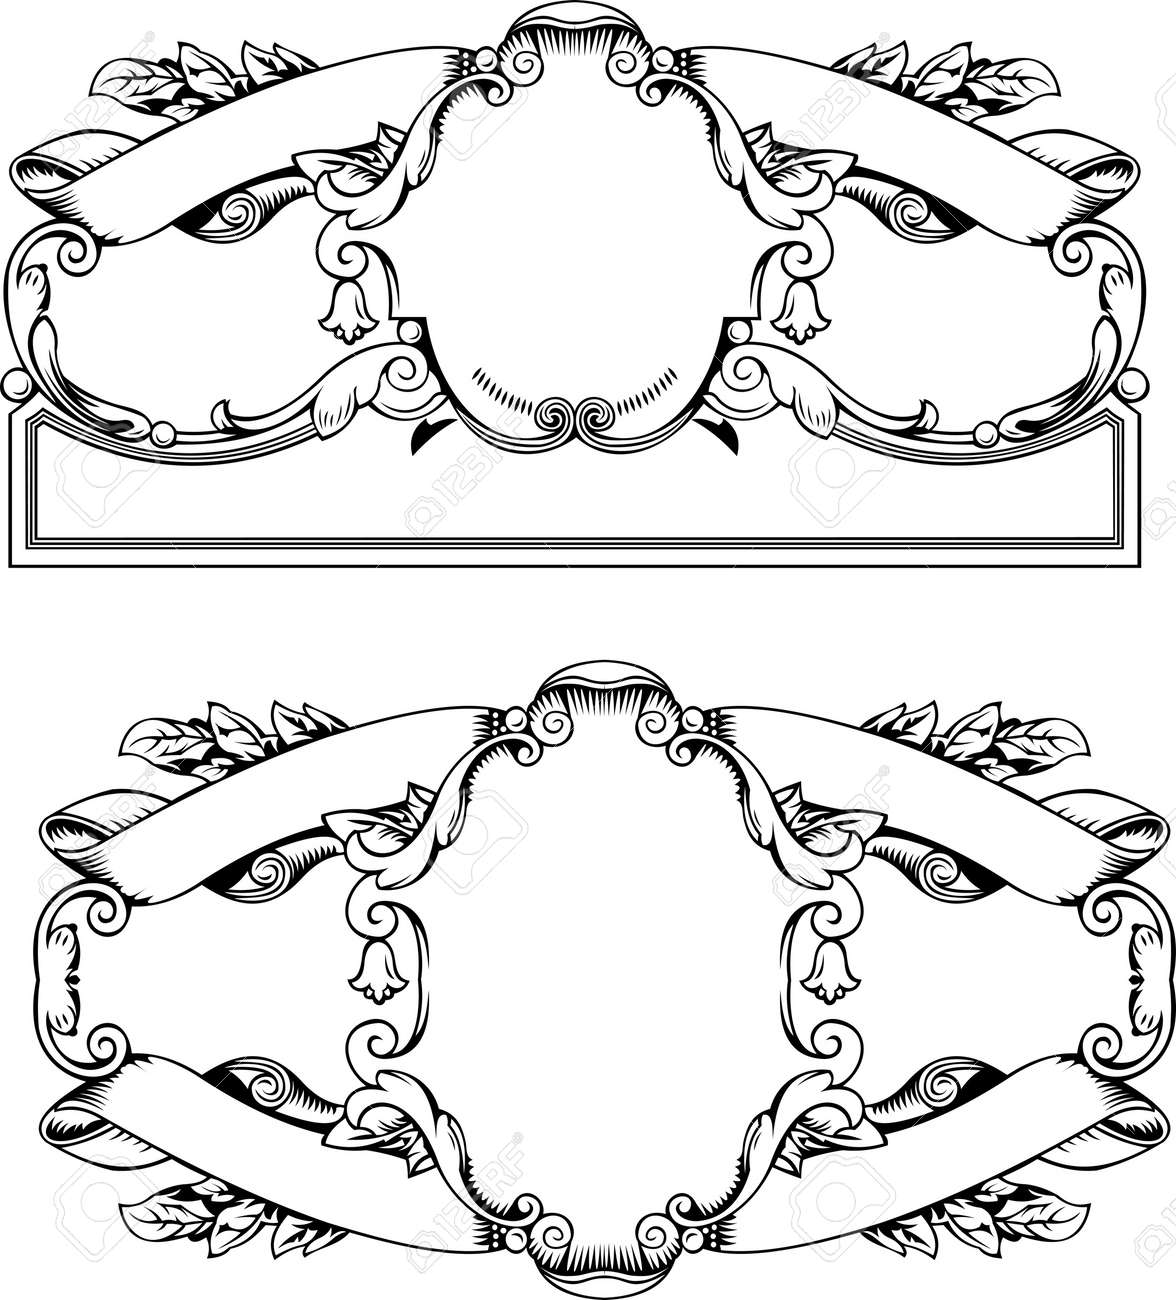 Antique Frames And Banners  Engraving, Scalable And Editable Illustration Stock Vector - 8878205